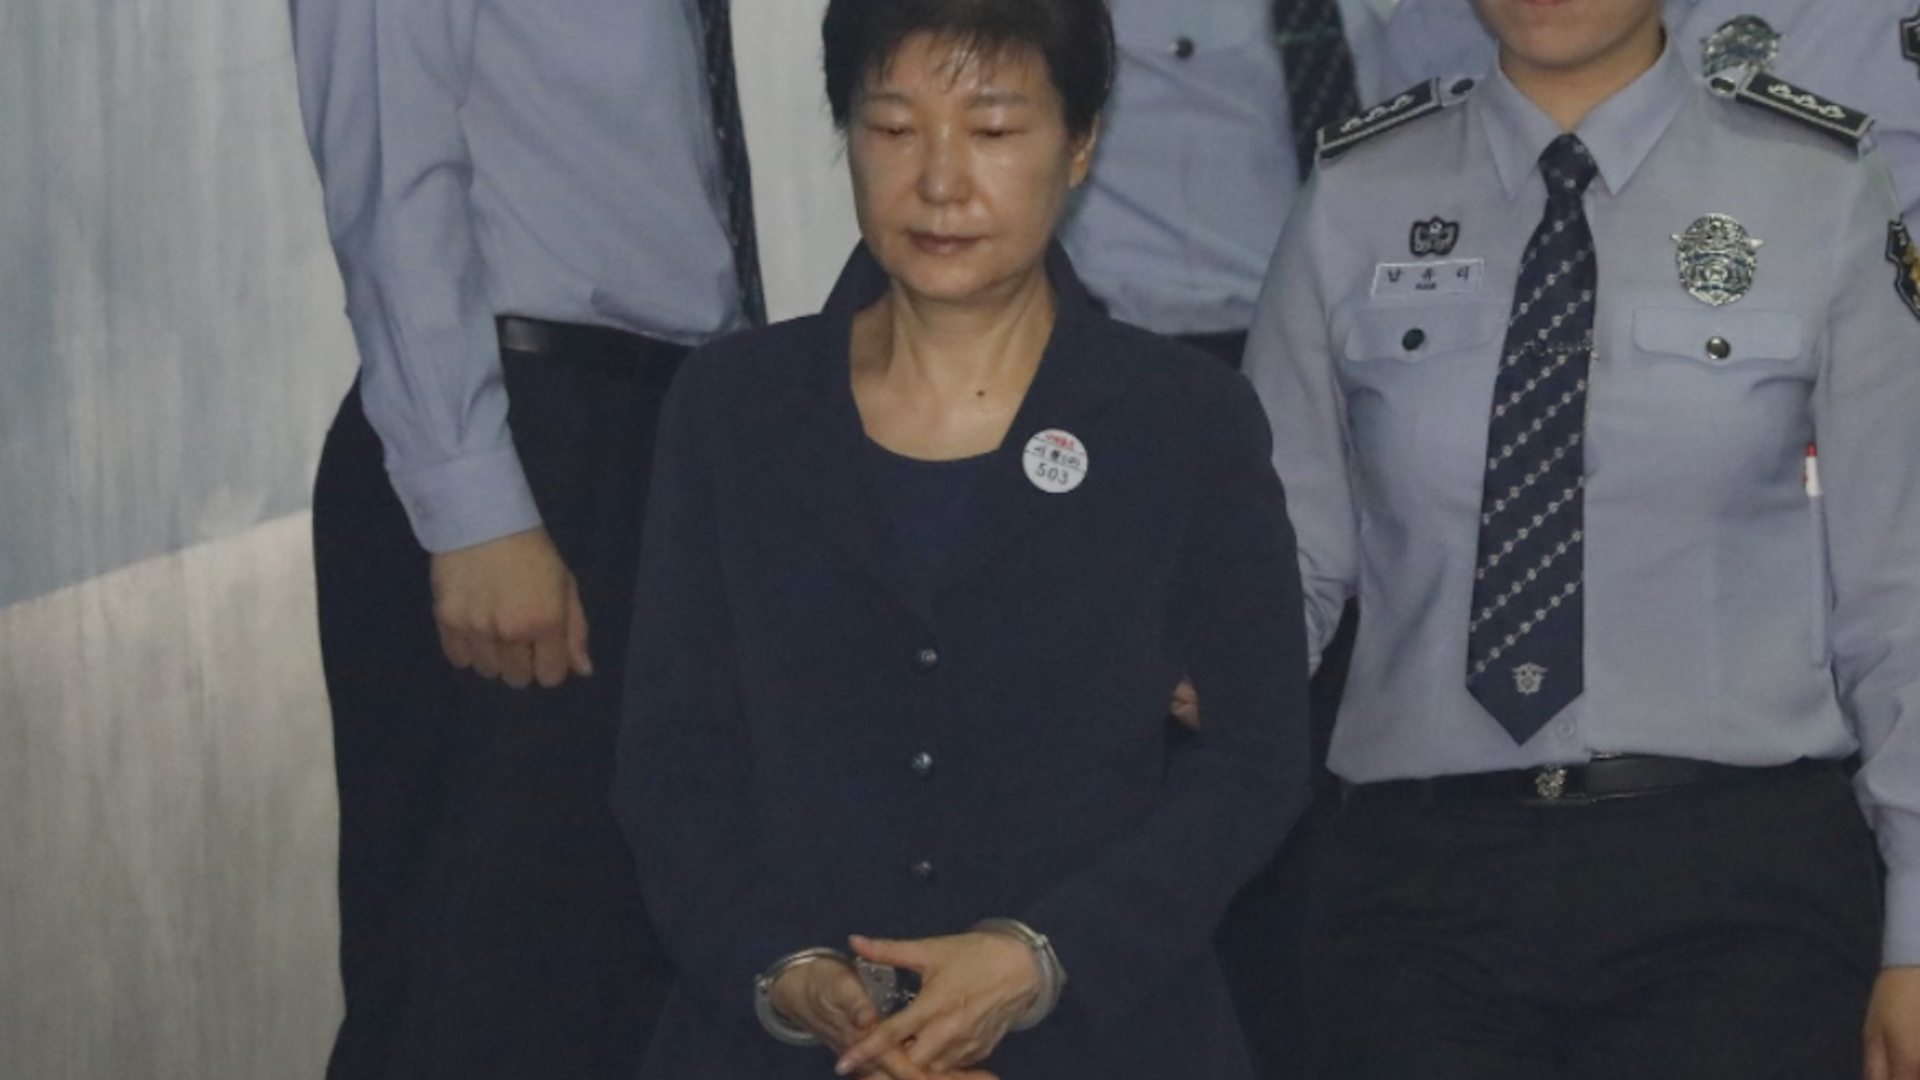 South Koreans get a glimpse of their ousted president — in handcuffs